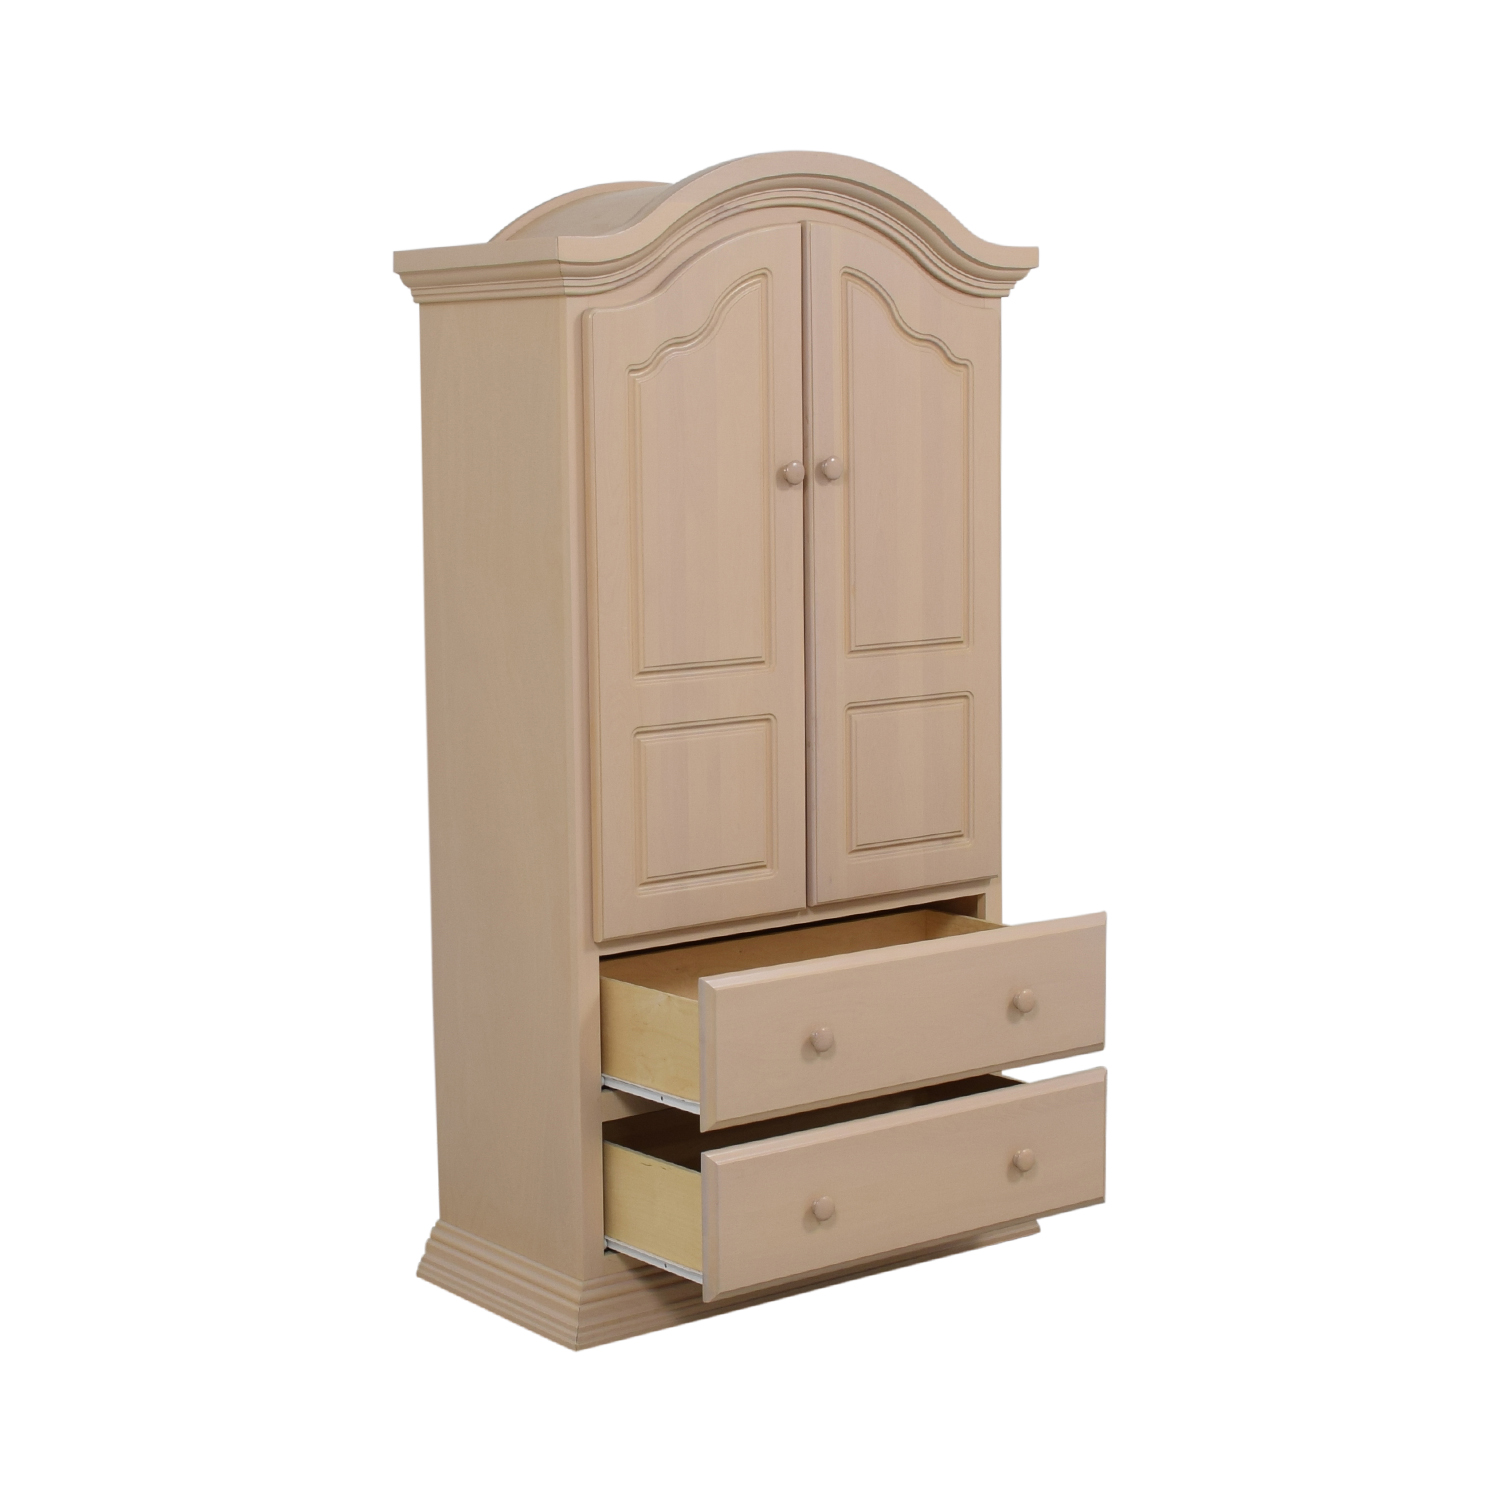 Two-Drawer Clothing Armoire for sale